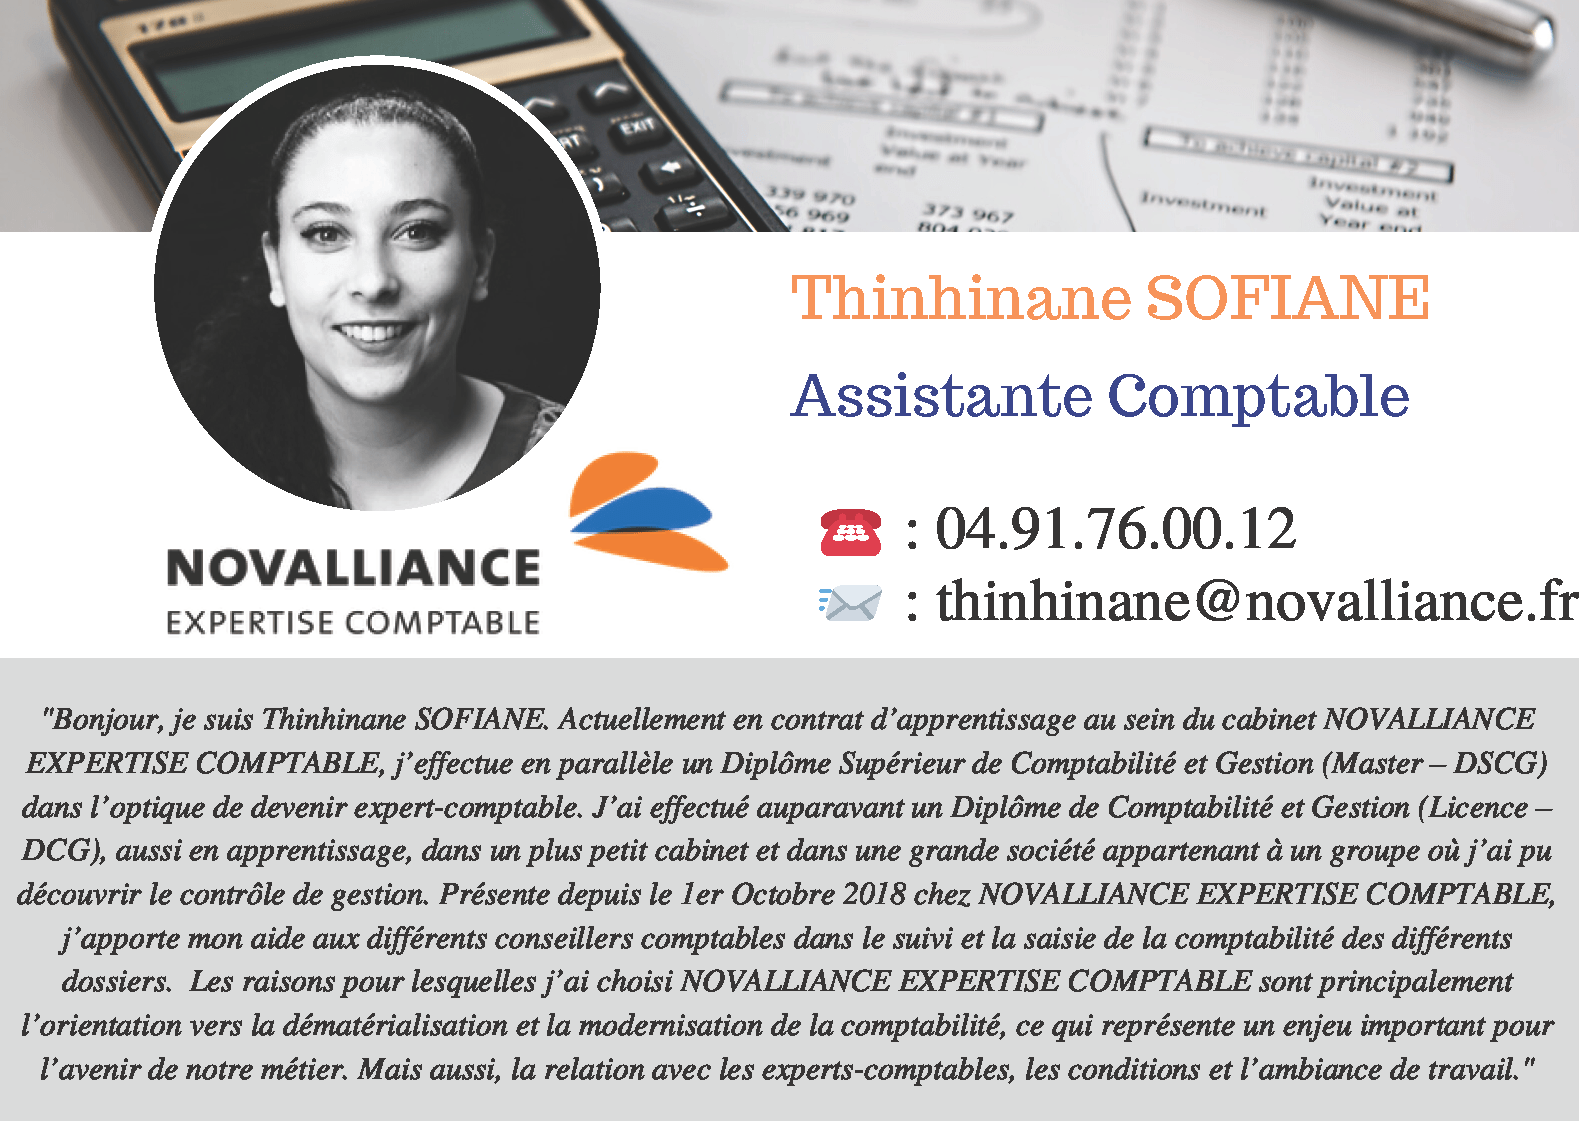 Fiche Assistante Comptable Thinhinane SOFIANE